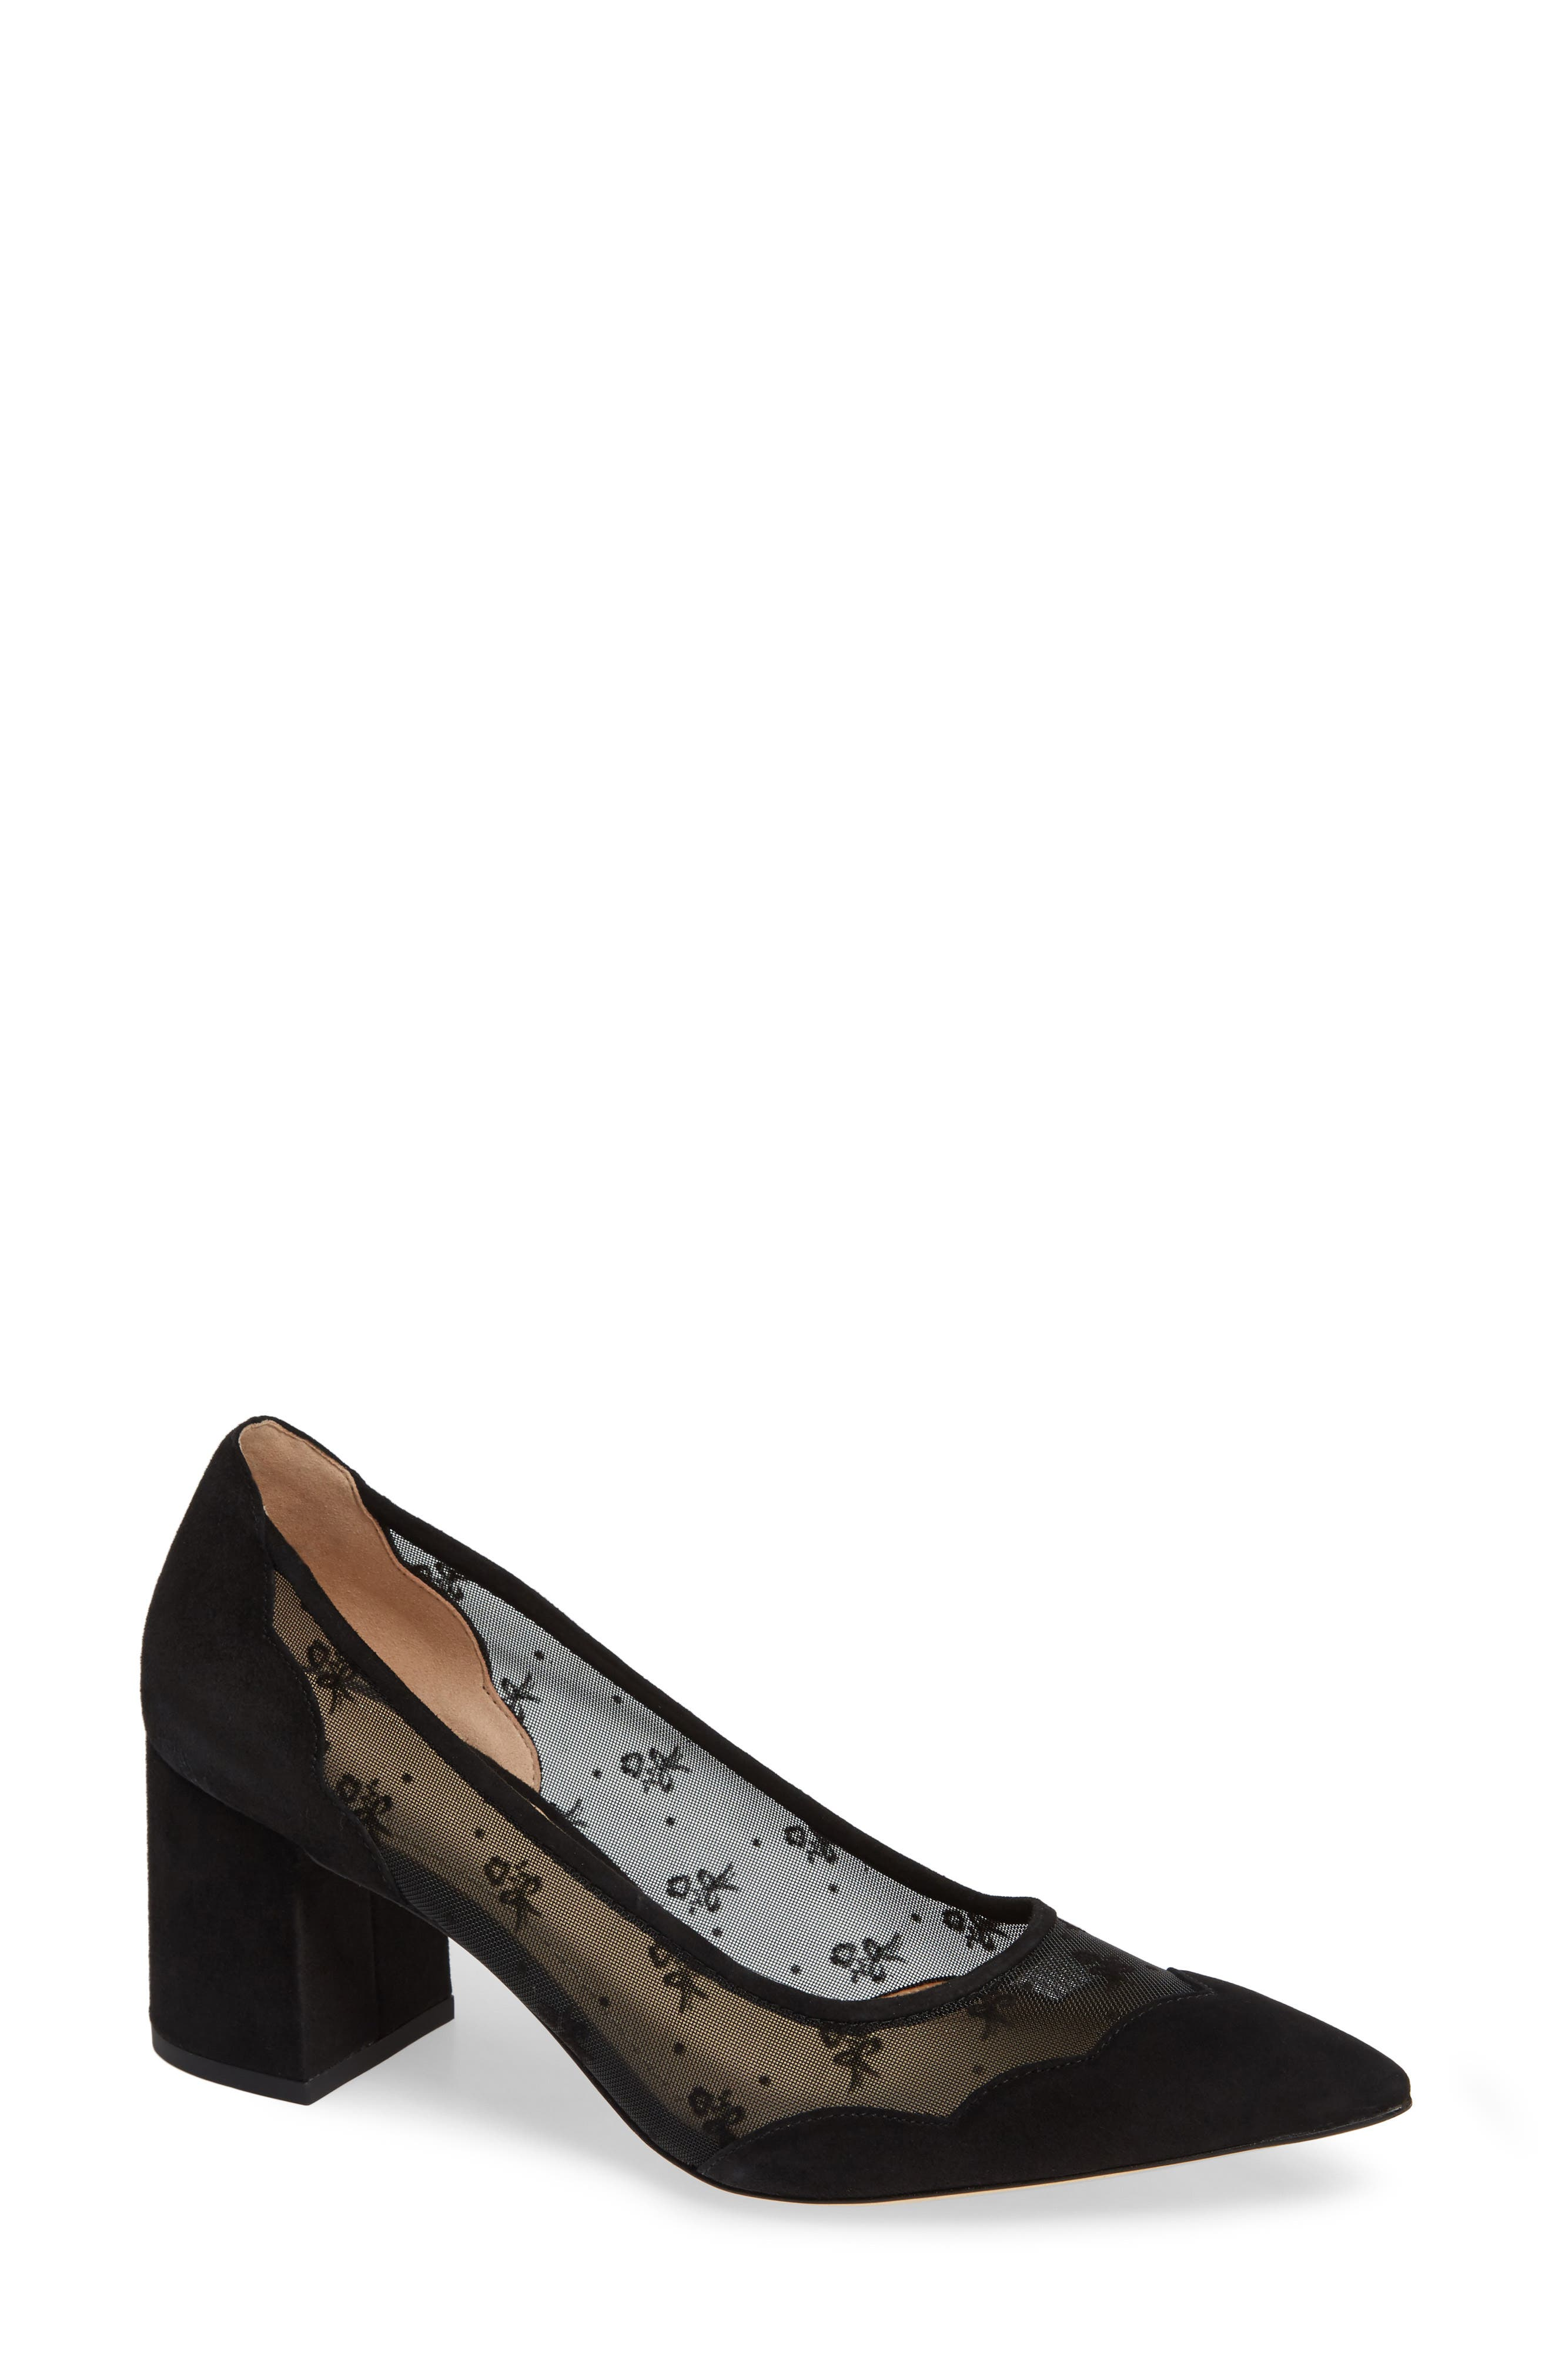 COACH, Whitley Scallop Pointy Toe Pump, Main thumbnail 1, color, BLACK SUEDE